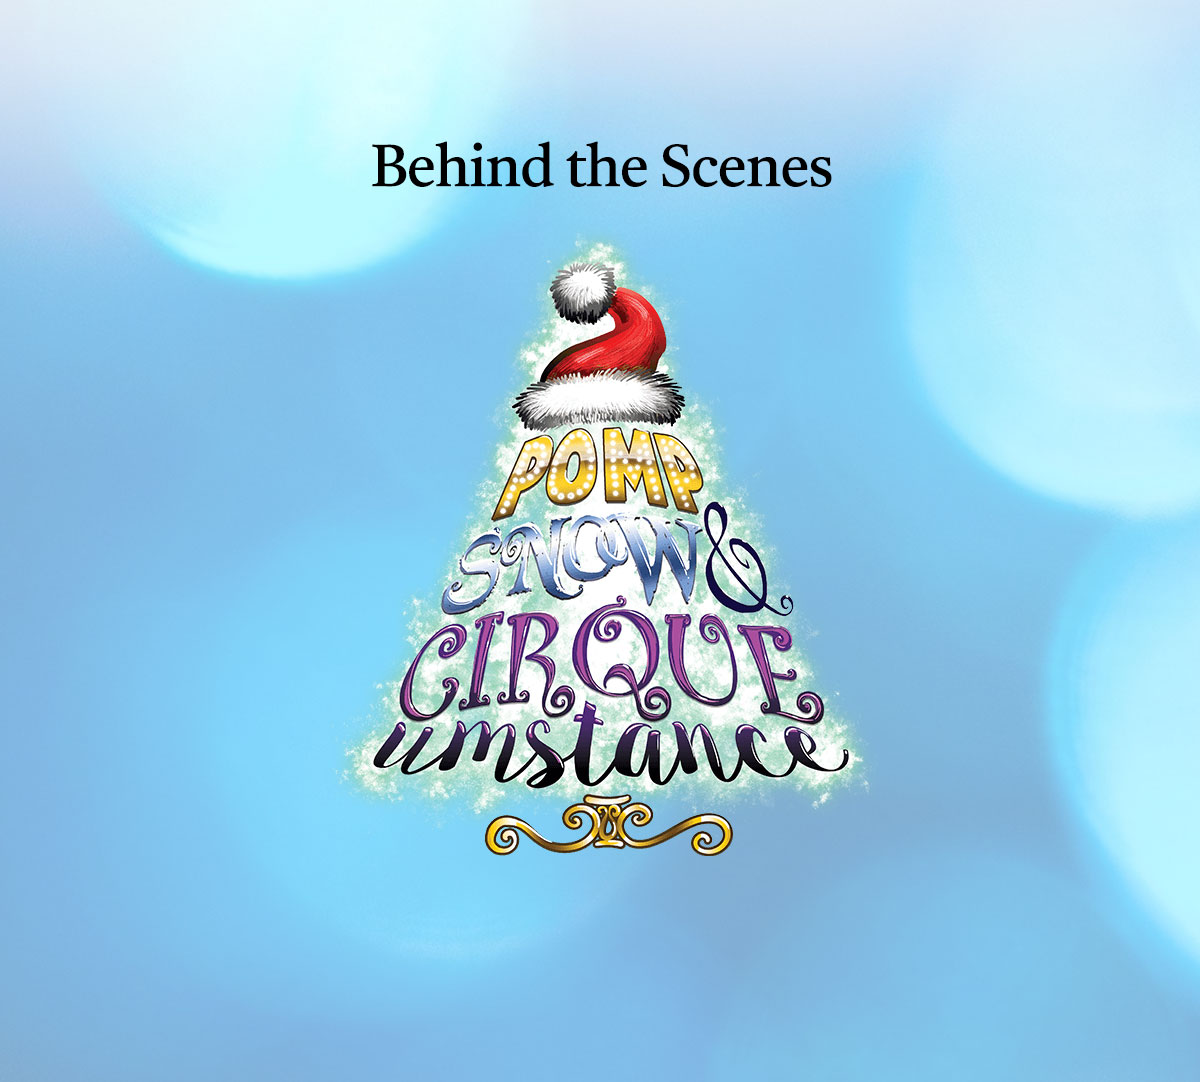 Behind the Scenes: Pomp, Snow, & CIRQUEumstance • News